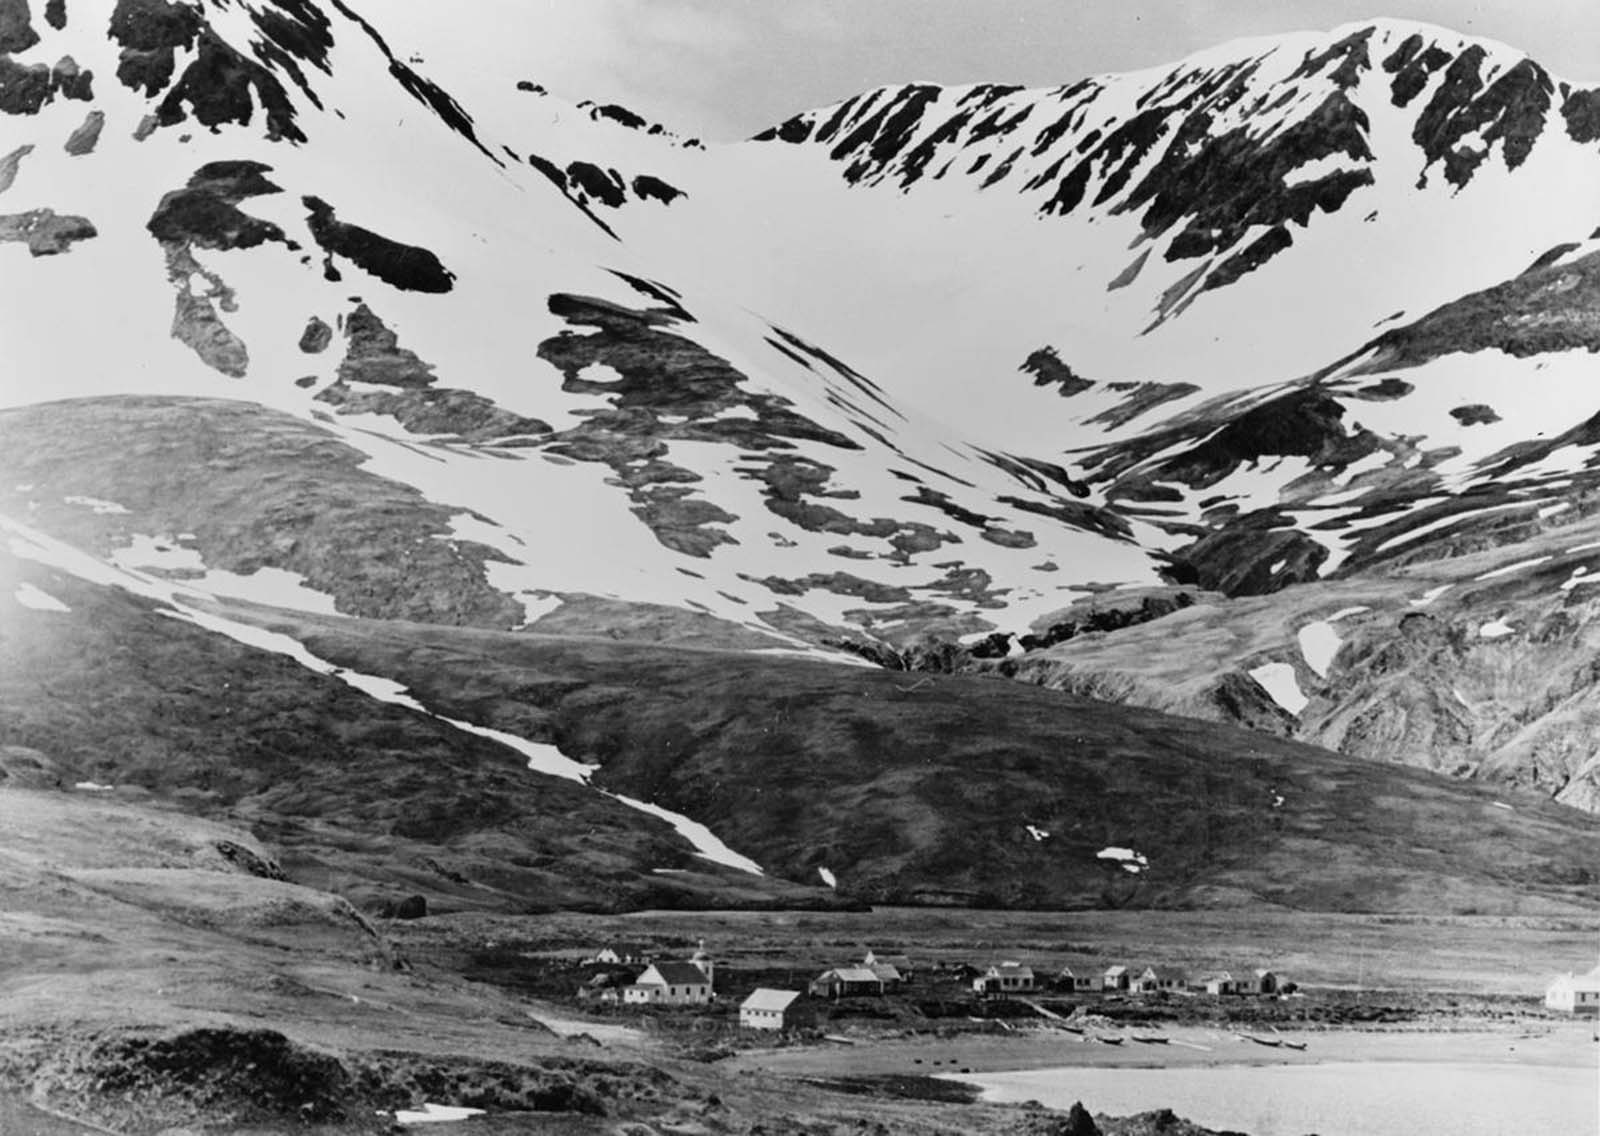 Bleak, mountainous Attu Island in Alaska had a population of only about 46 people prior to the Japanese invasion. On June 6, 1942, a Japanese force of 1,100 soldiers landed, occupying the island. One resident was killed in the invasion, the remaining 45 were shipped to a Japanese prison camp near Otaru, Hokkaido, where sixteen died while in captivity. This is a picture of Attu village situated on Chichagof Harbor.